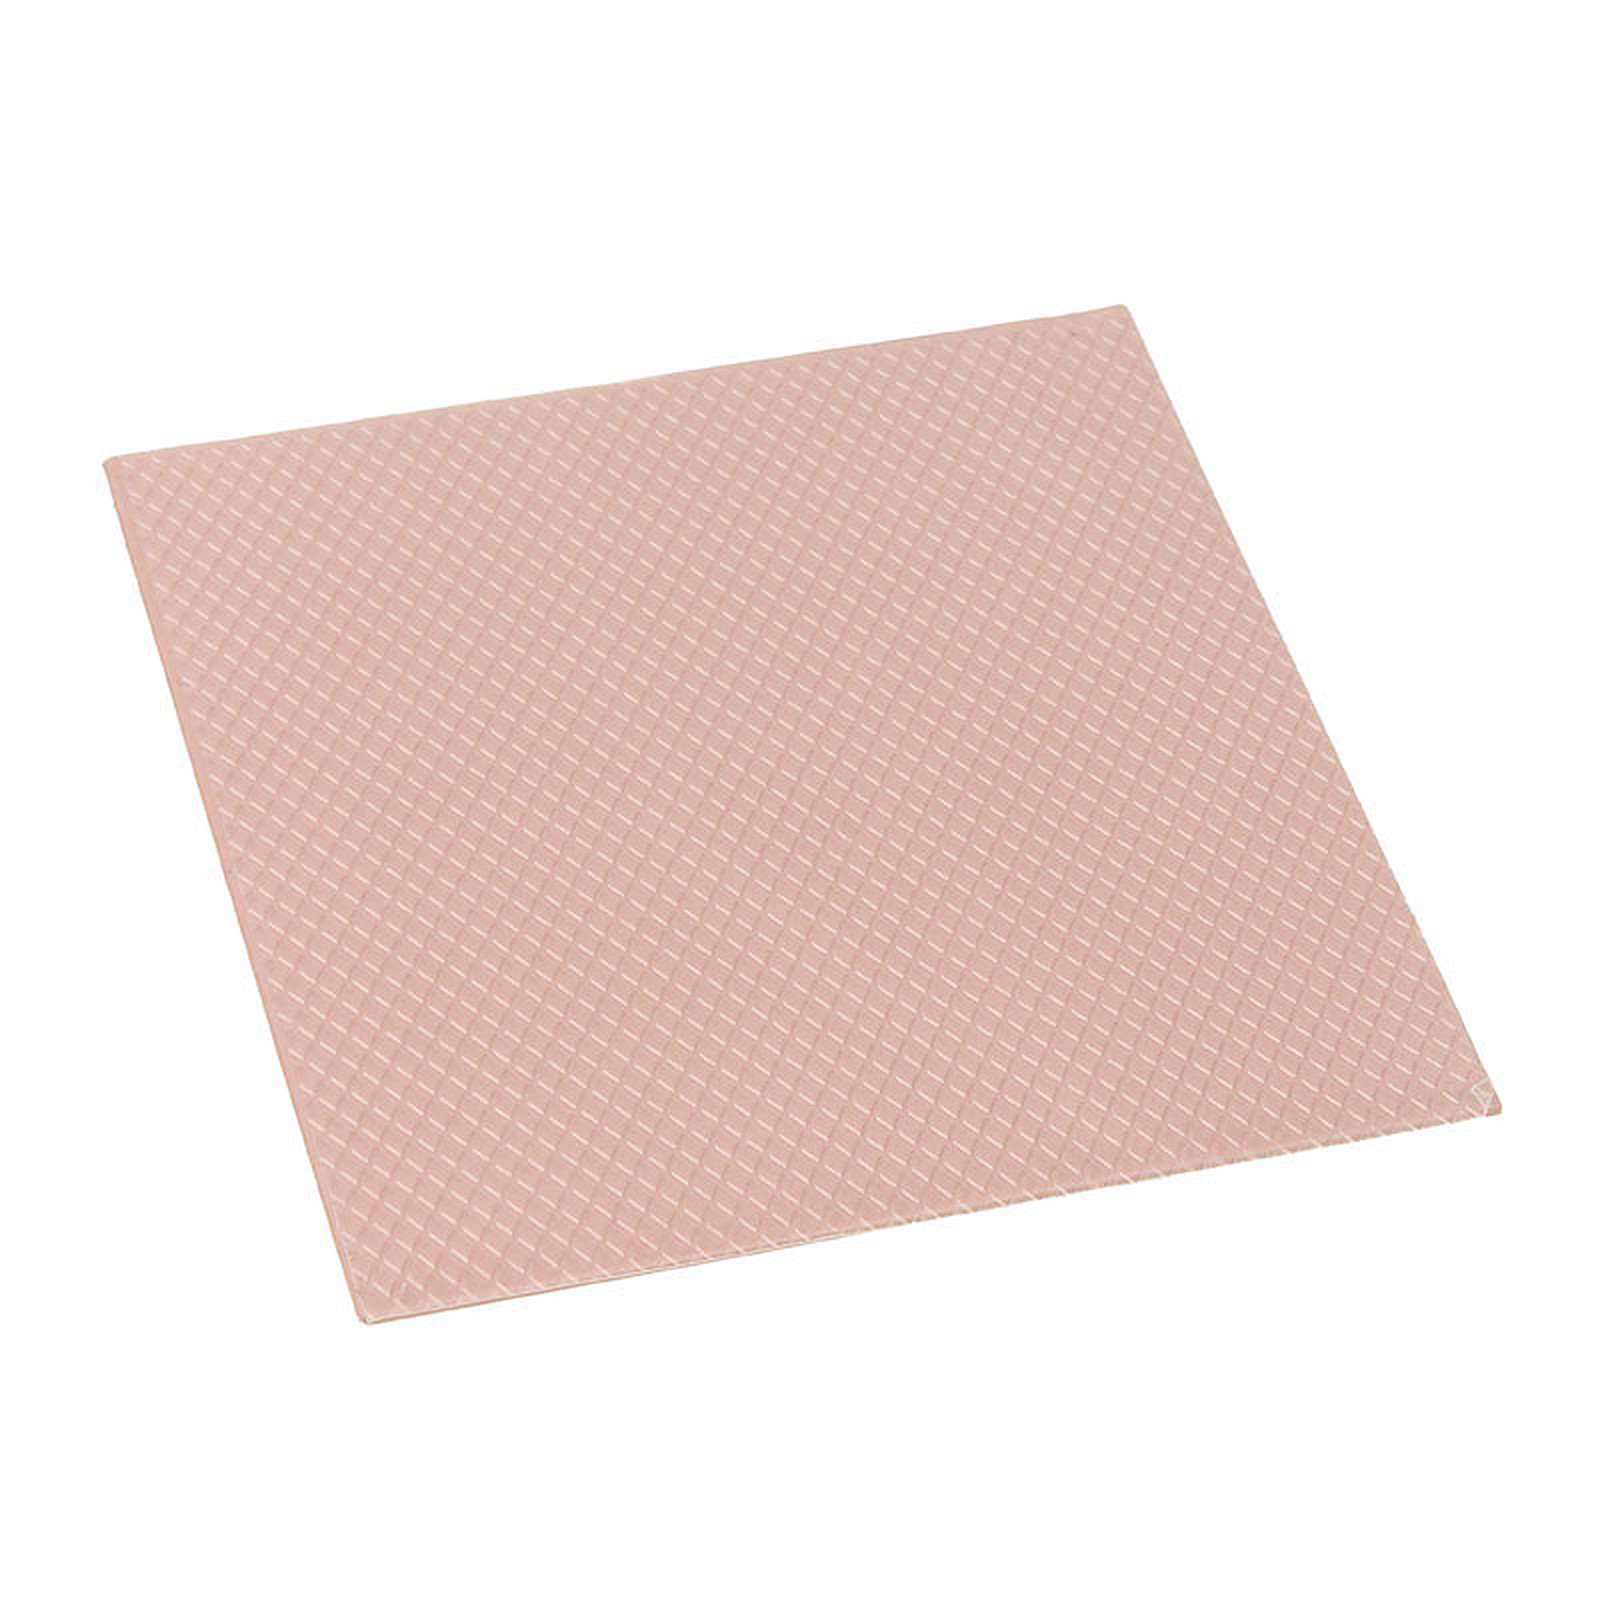 Thermal Grizzly Minus Pad 8 (100 x 100 x 2 mm)